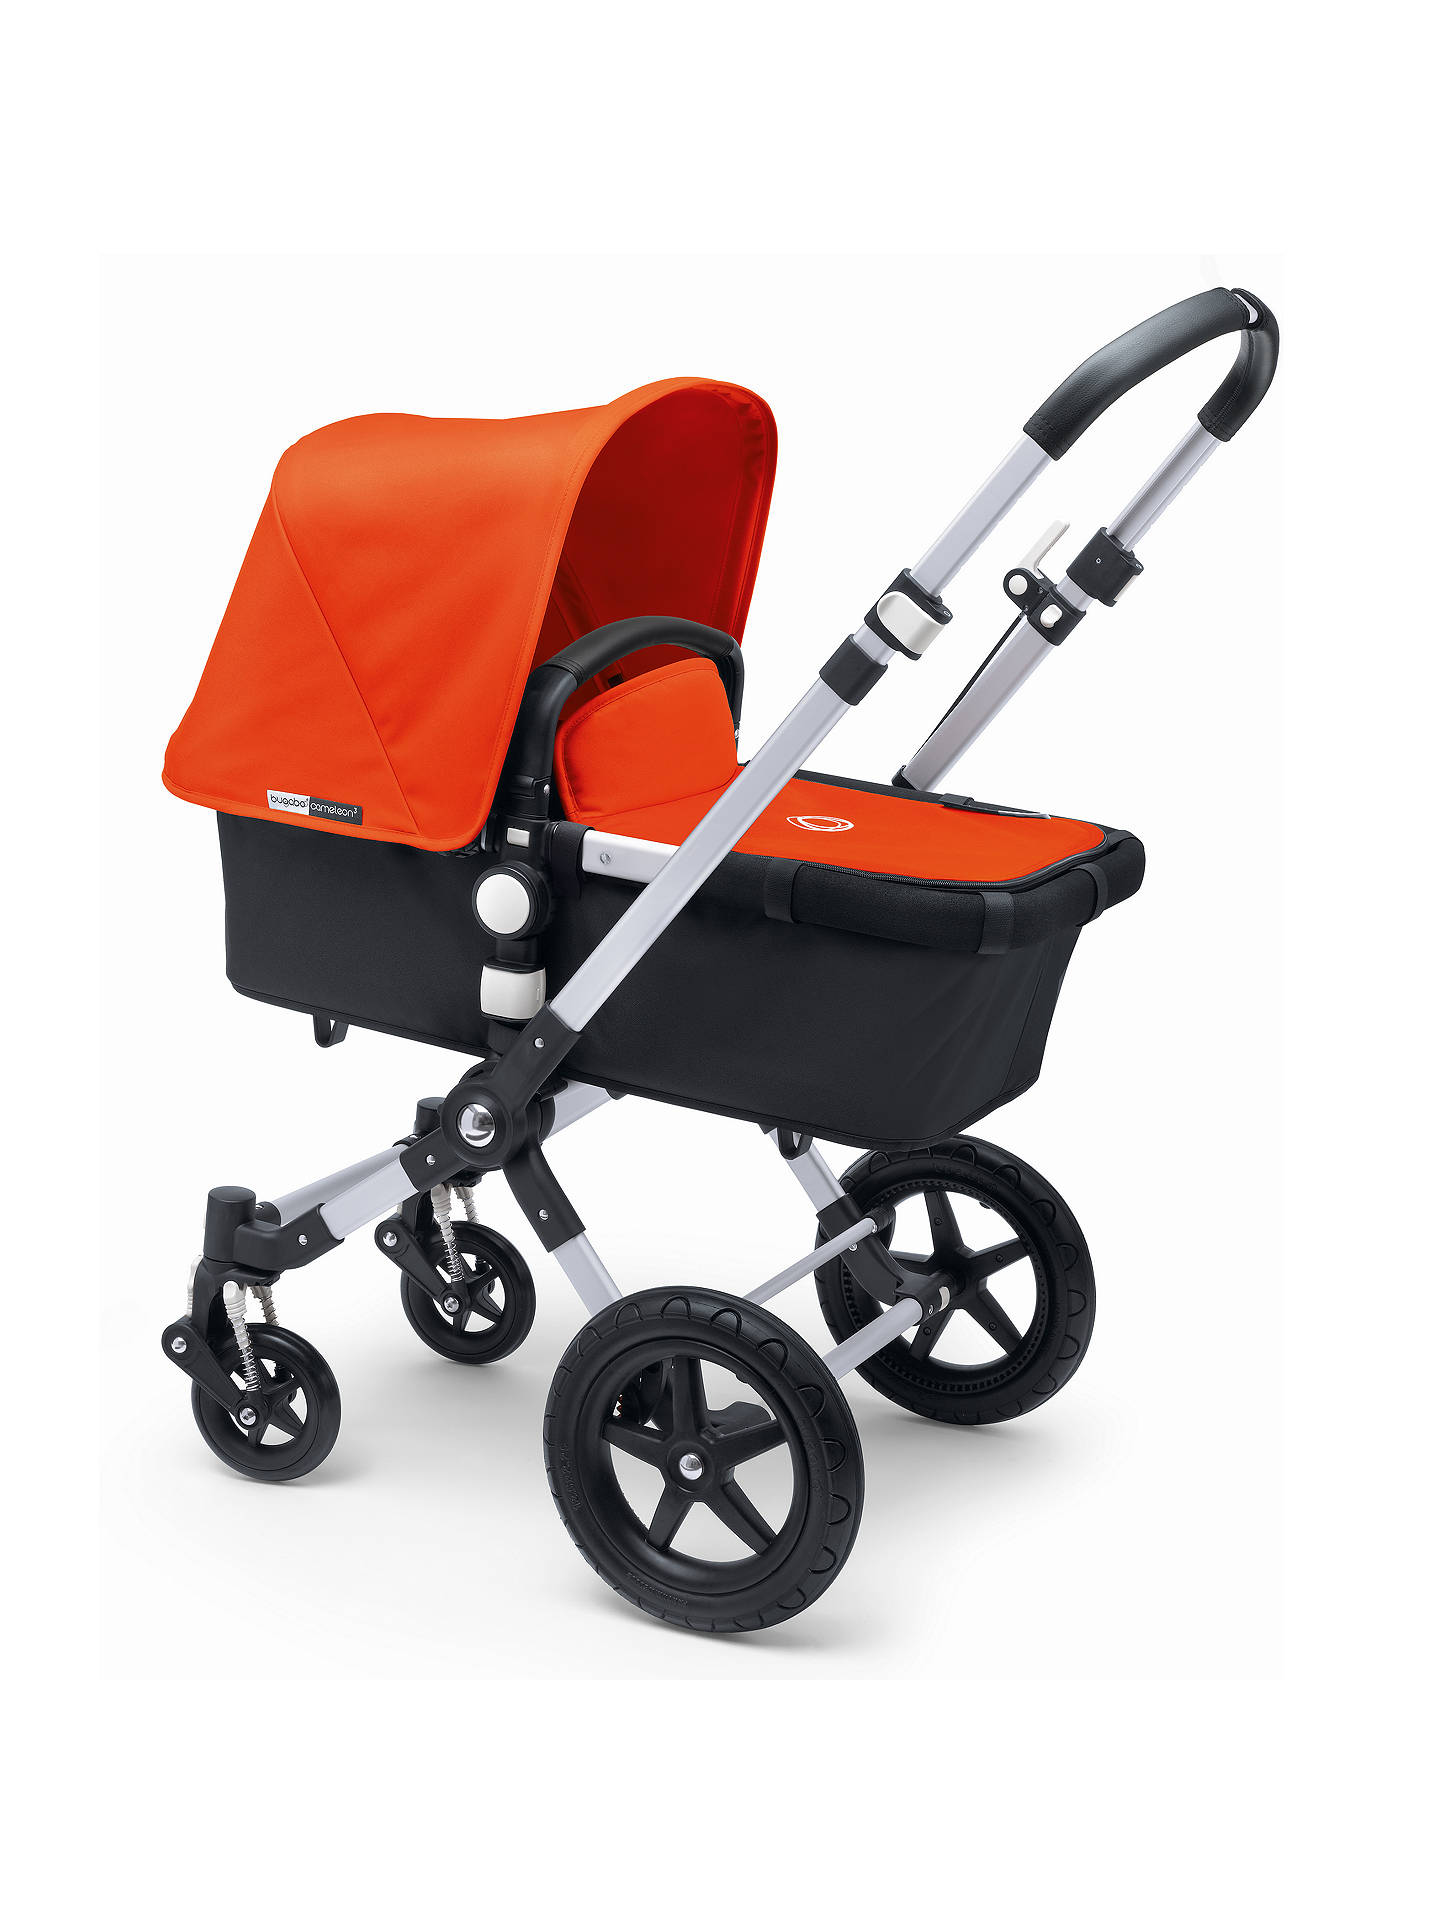 BuyBugaboo Cameleon3 Pushchair Base Unit and Carrycot, Aluminum/Black Online at johnlewis.com